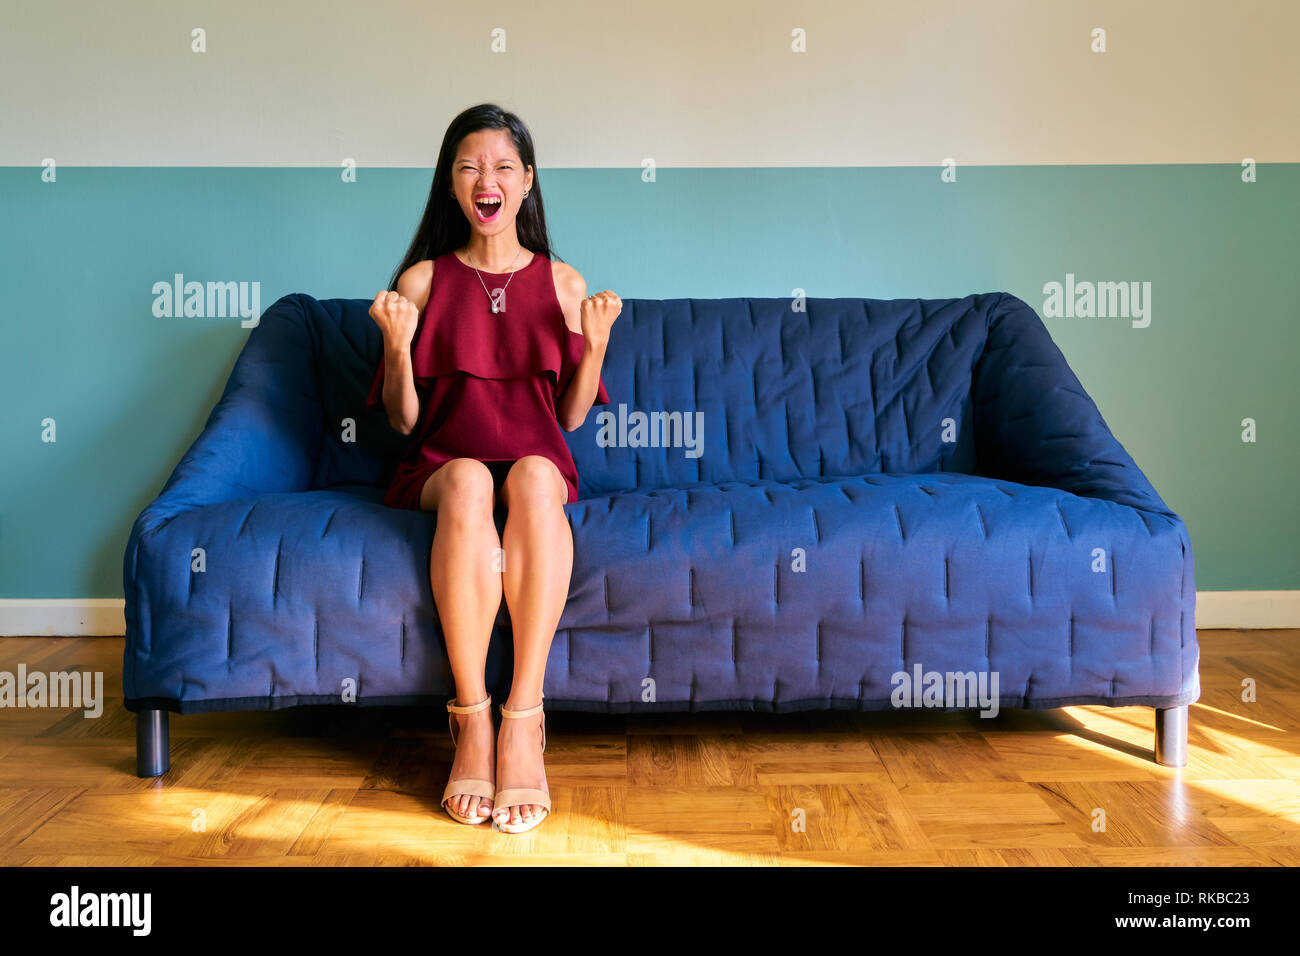 Beautiful woman posing - young woman winning and celebrating sitting on sofa - Stock Image